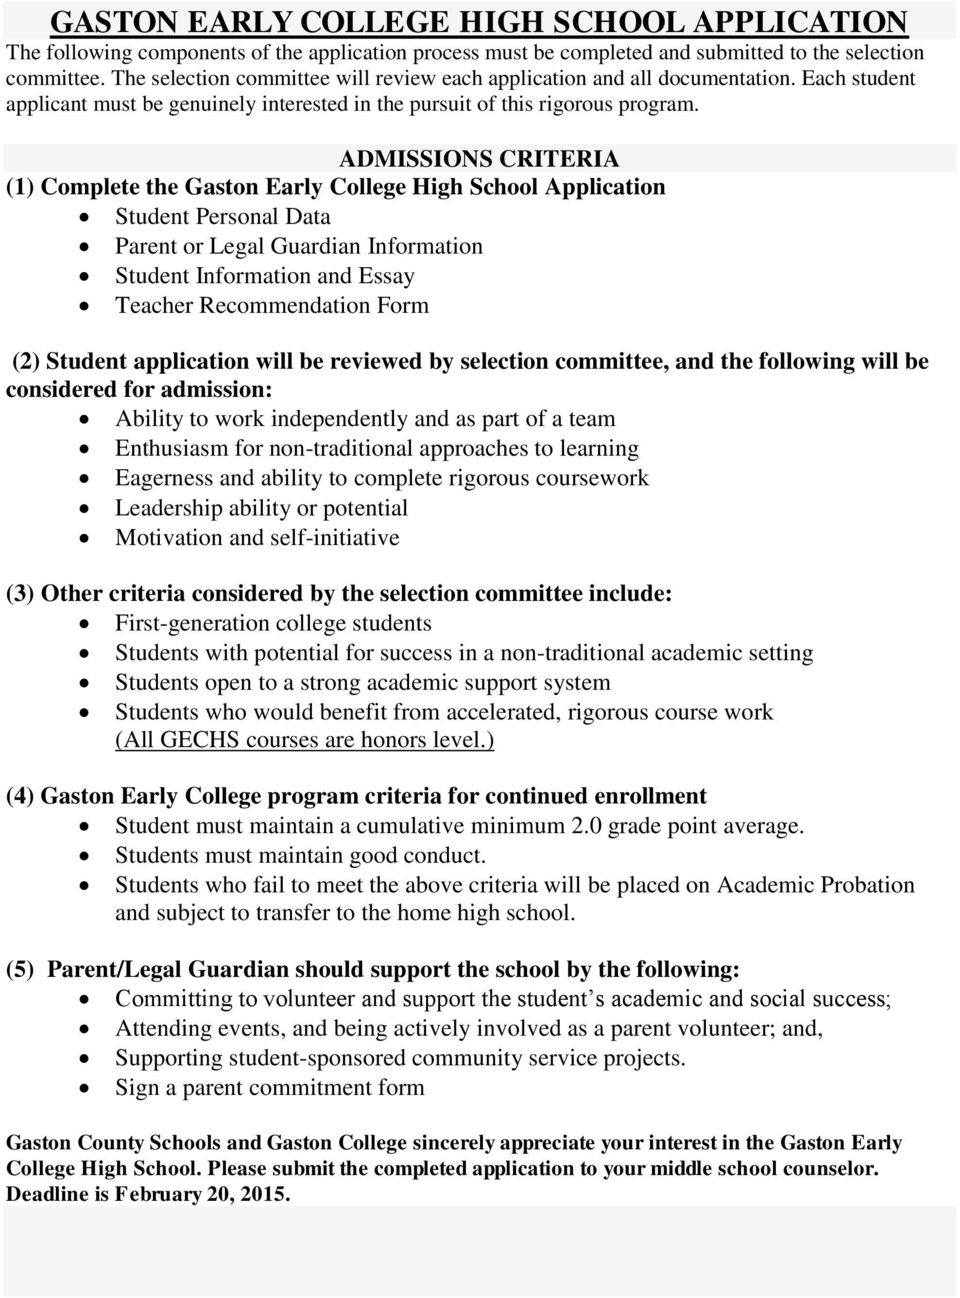 Gaston Early College High School Application  Pdf Admissions Criteria  Complete The Gaston Early College High School  Application Student Personal Data